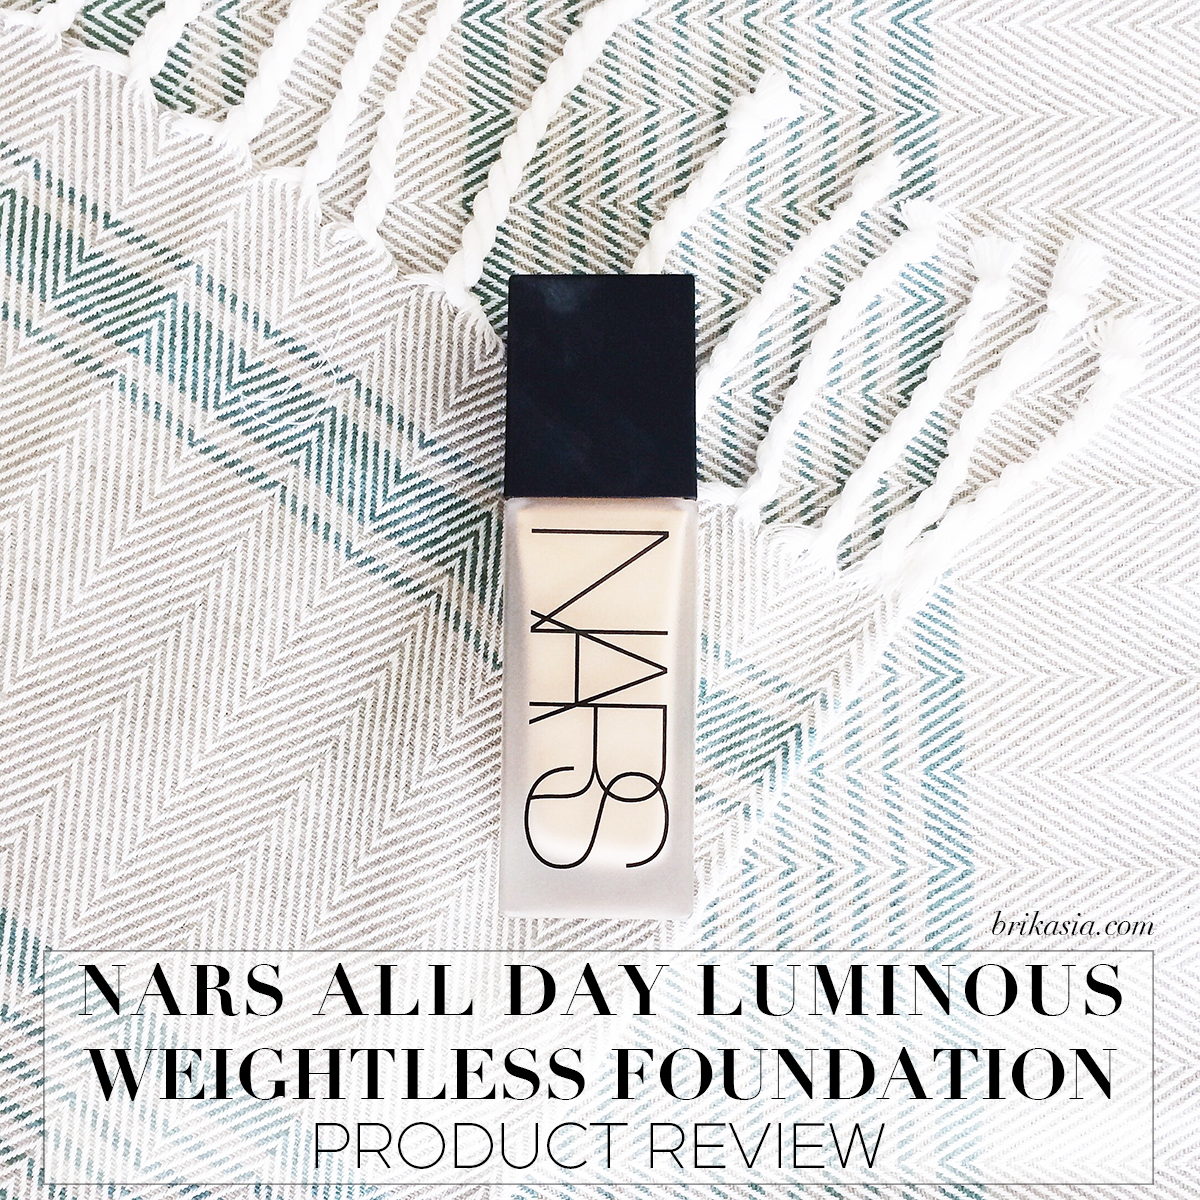 Nars All Day Luminous Weightless Foundation Review, best foundation for oily skin, foundation for combination skin, best foundation for acne